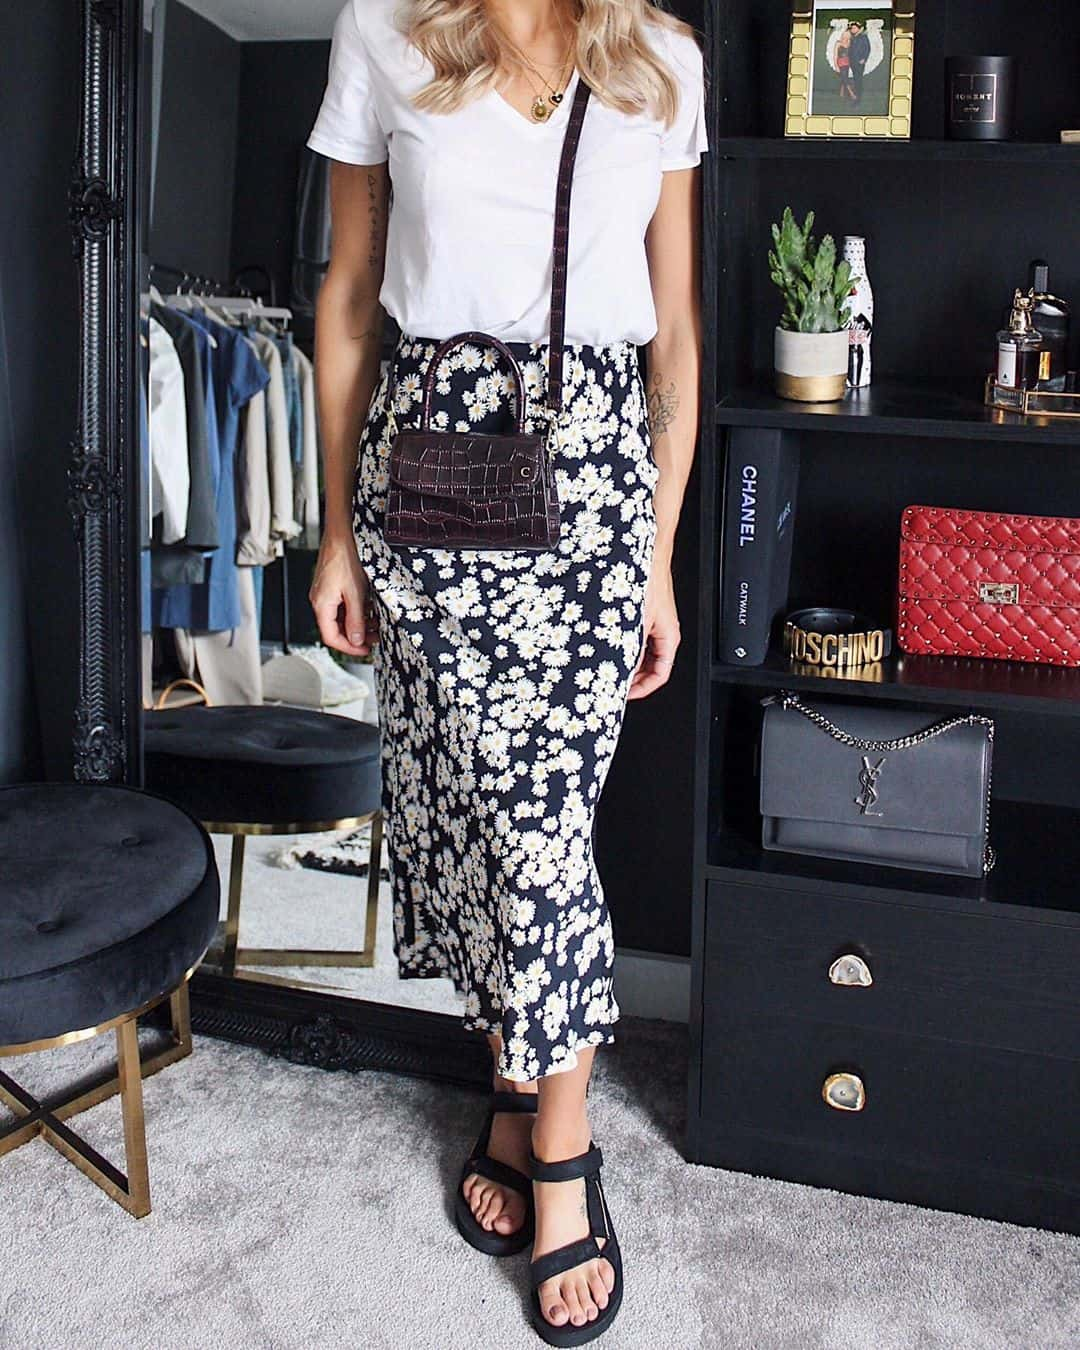 Floral Skirt and Black Sandals